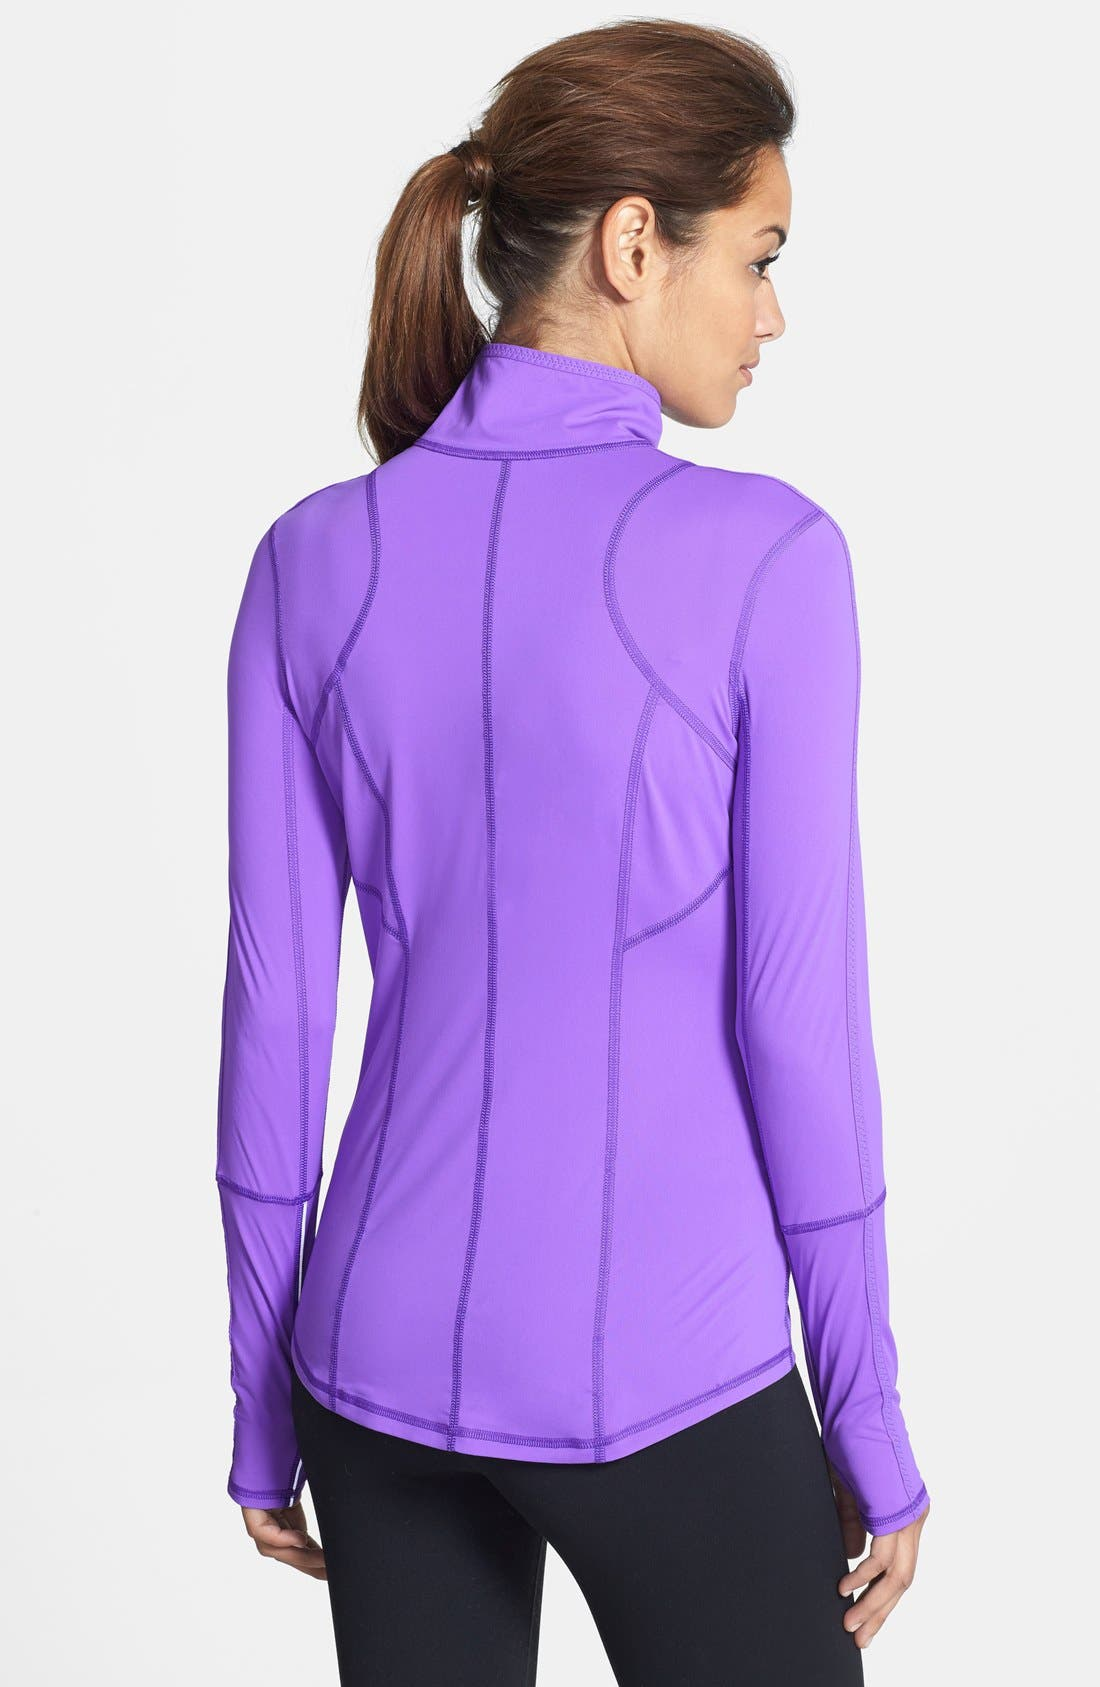 Alternate Image 2  - Zella 'On the Run' Half Zip Top